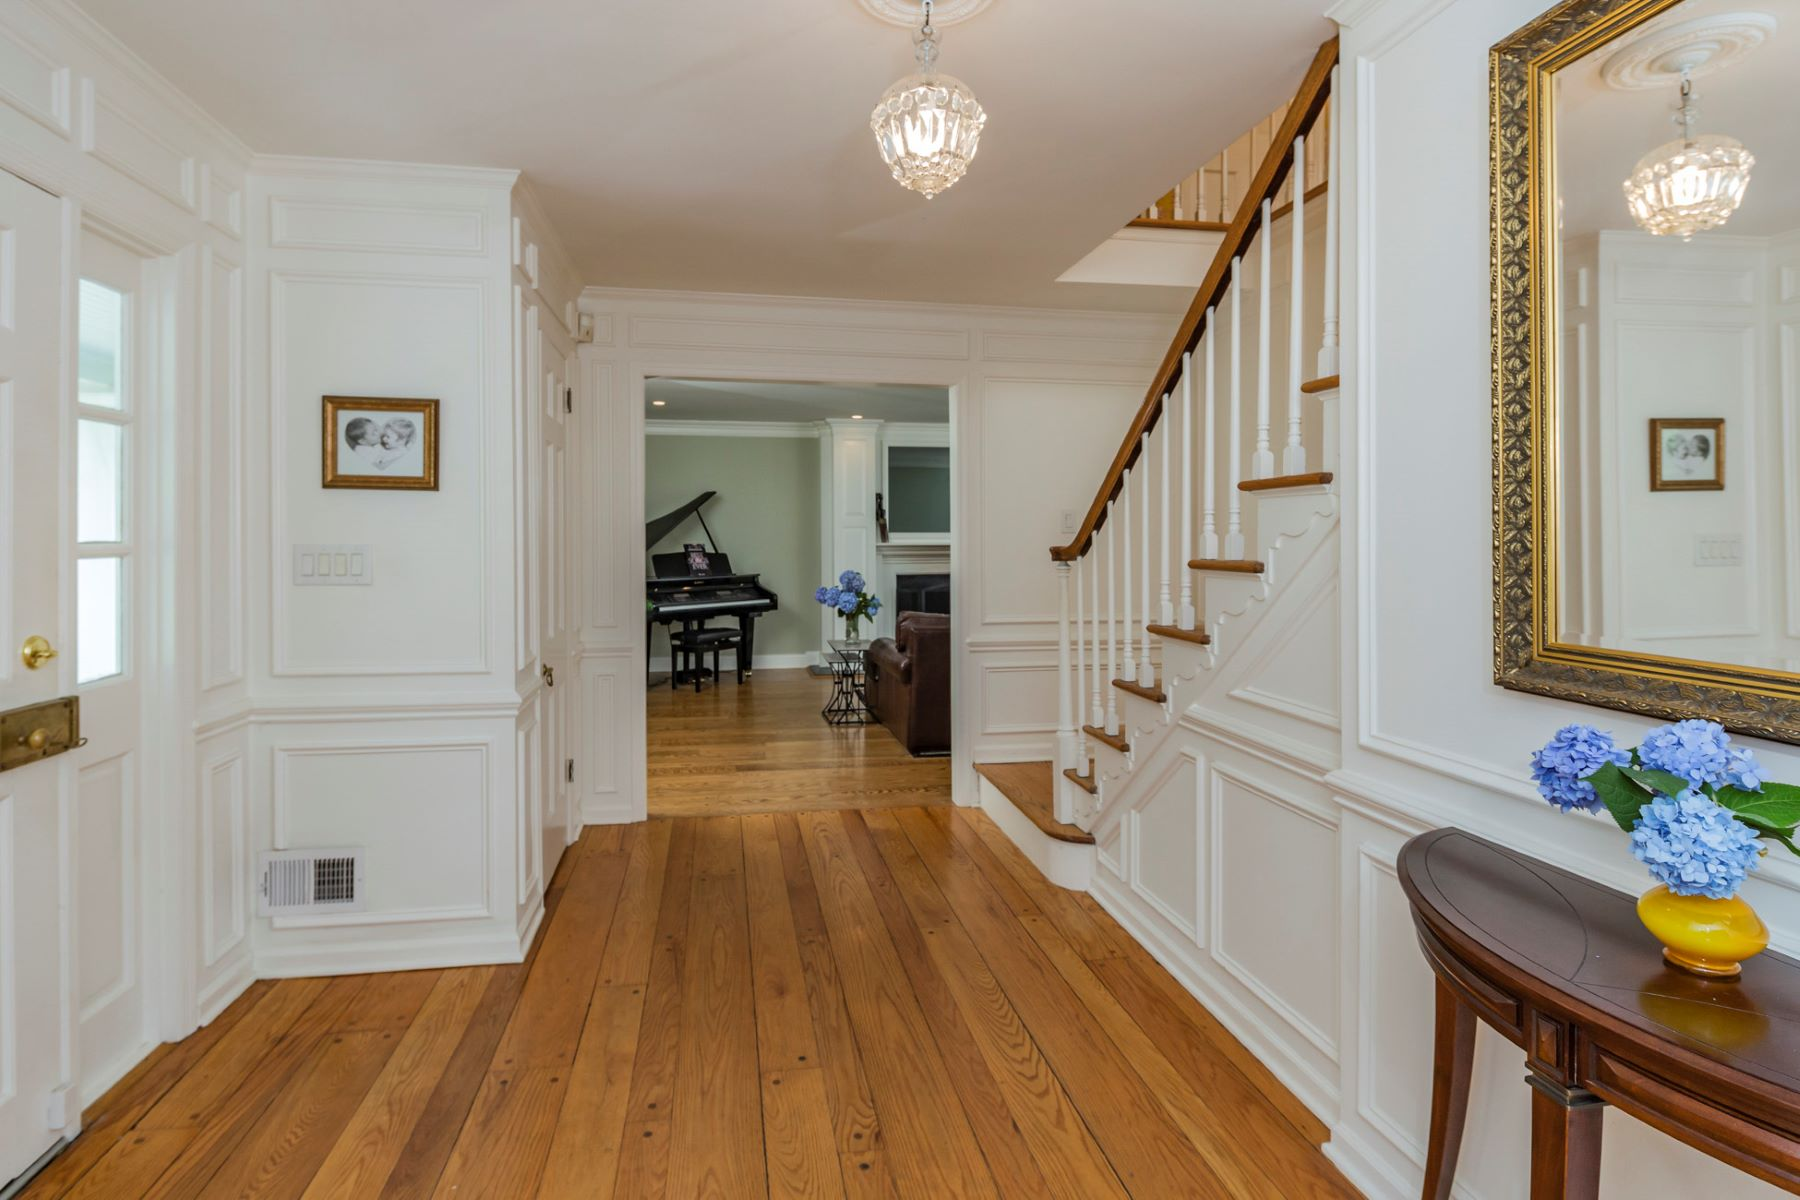 Additional photo for property listing at Stunning Cul-De-Sac Home Wrapped in Leafy Privacy 135 Crestview Drive Princeton, New Jersey 08540 United States